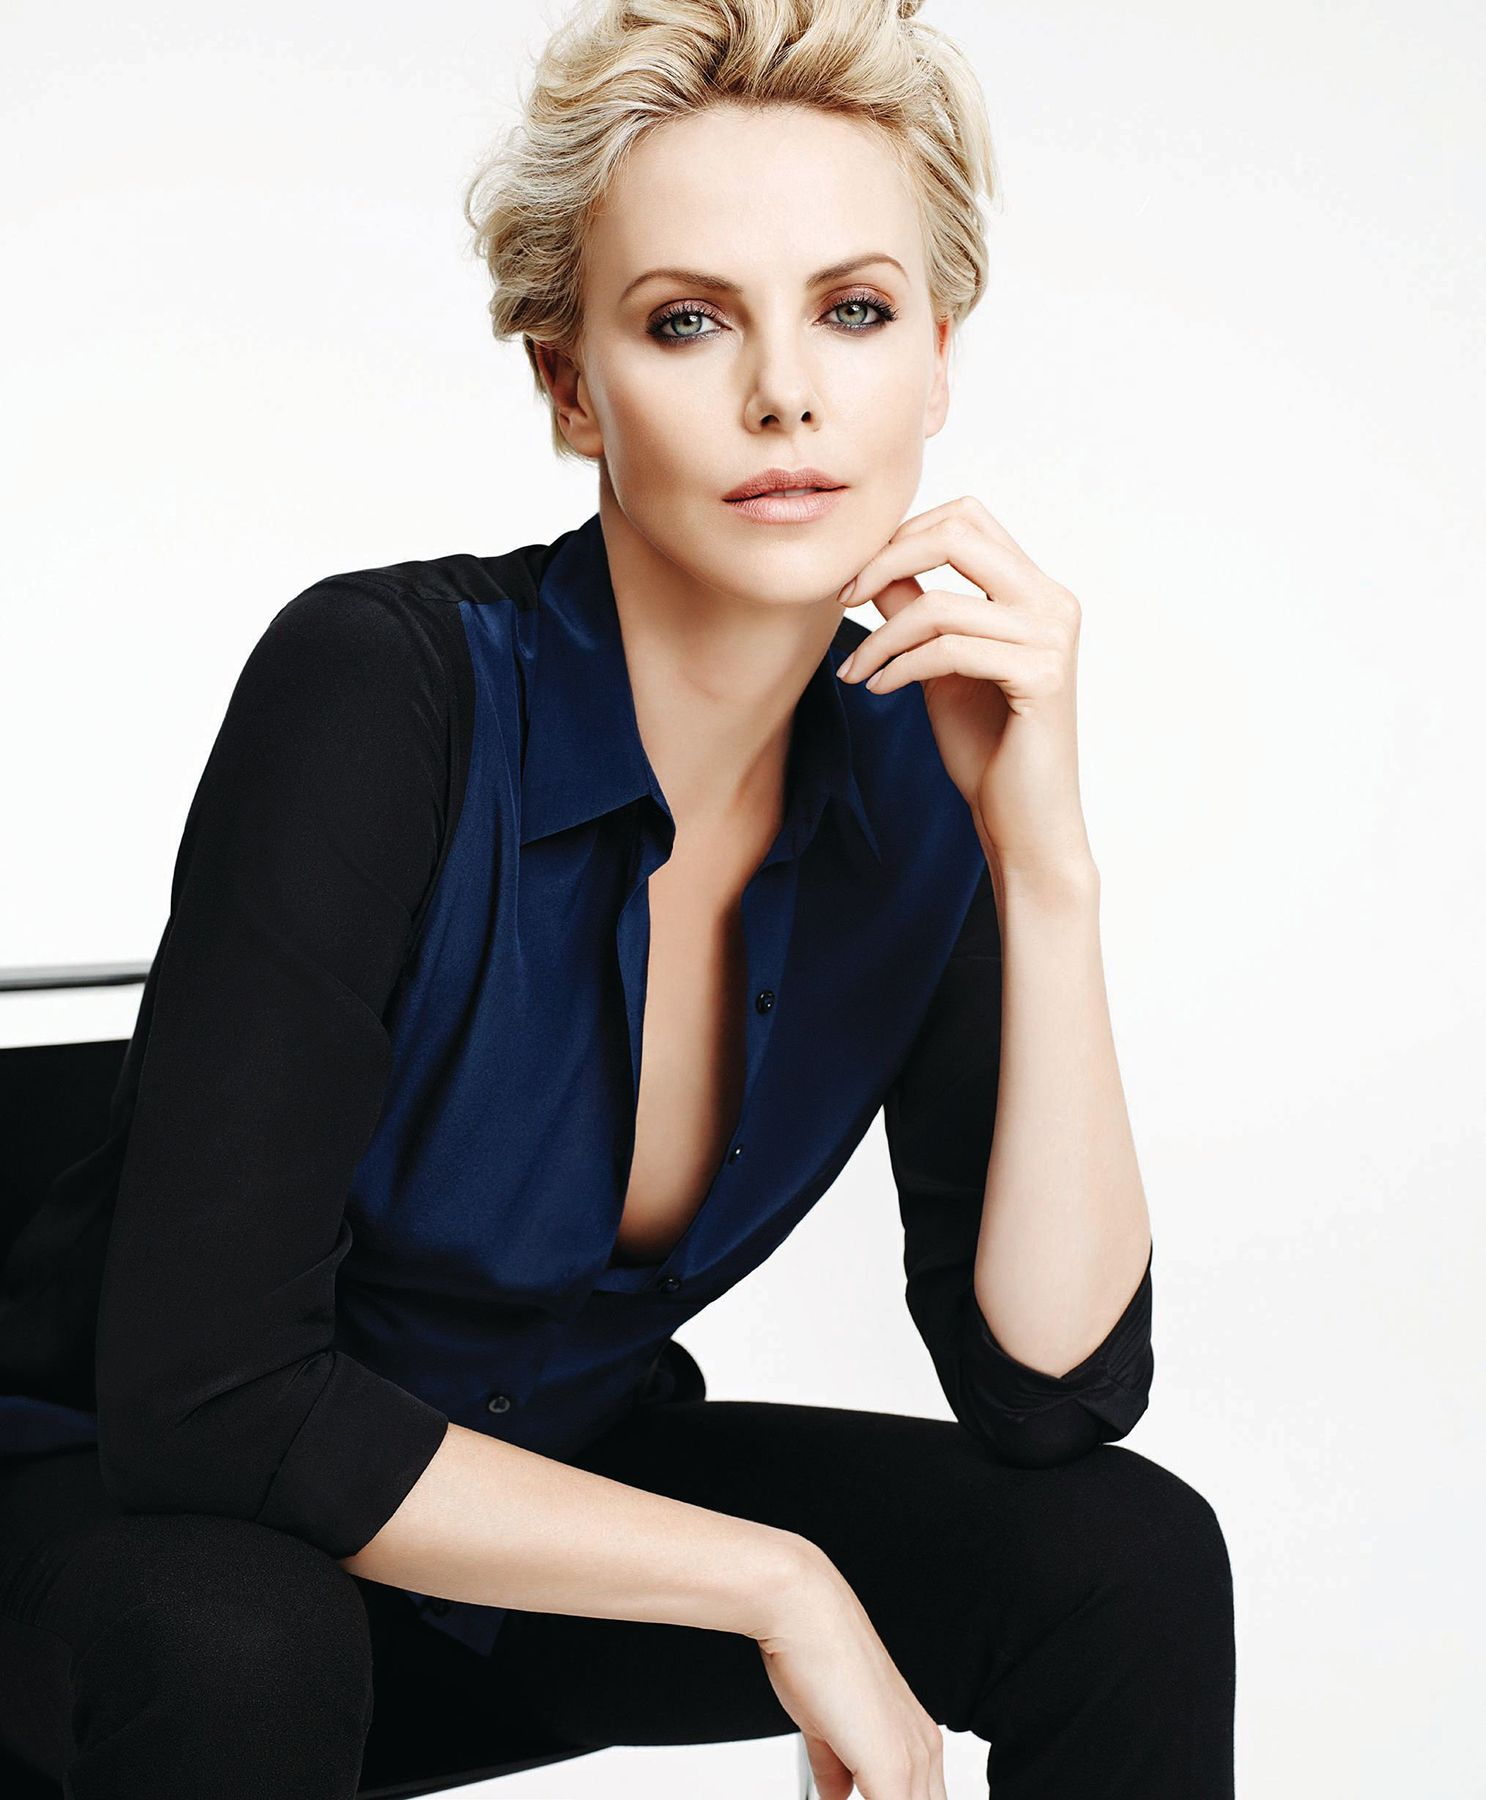 charlize theron - photo #26